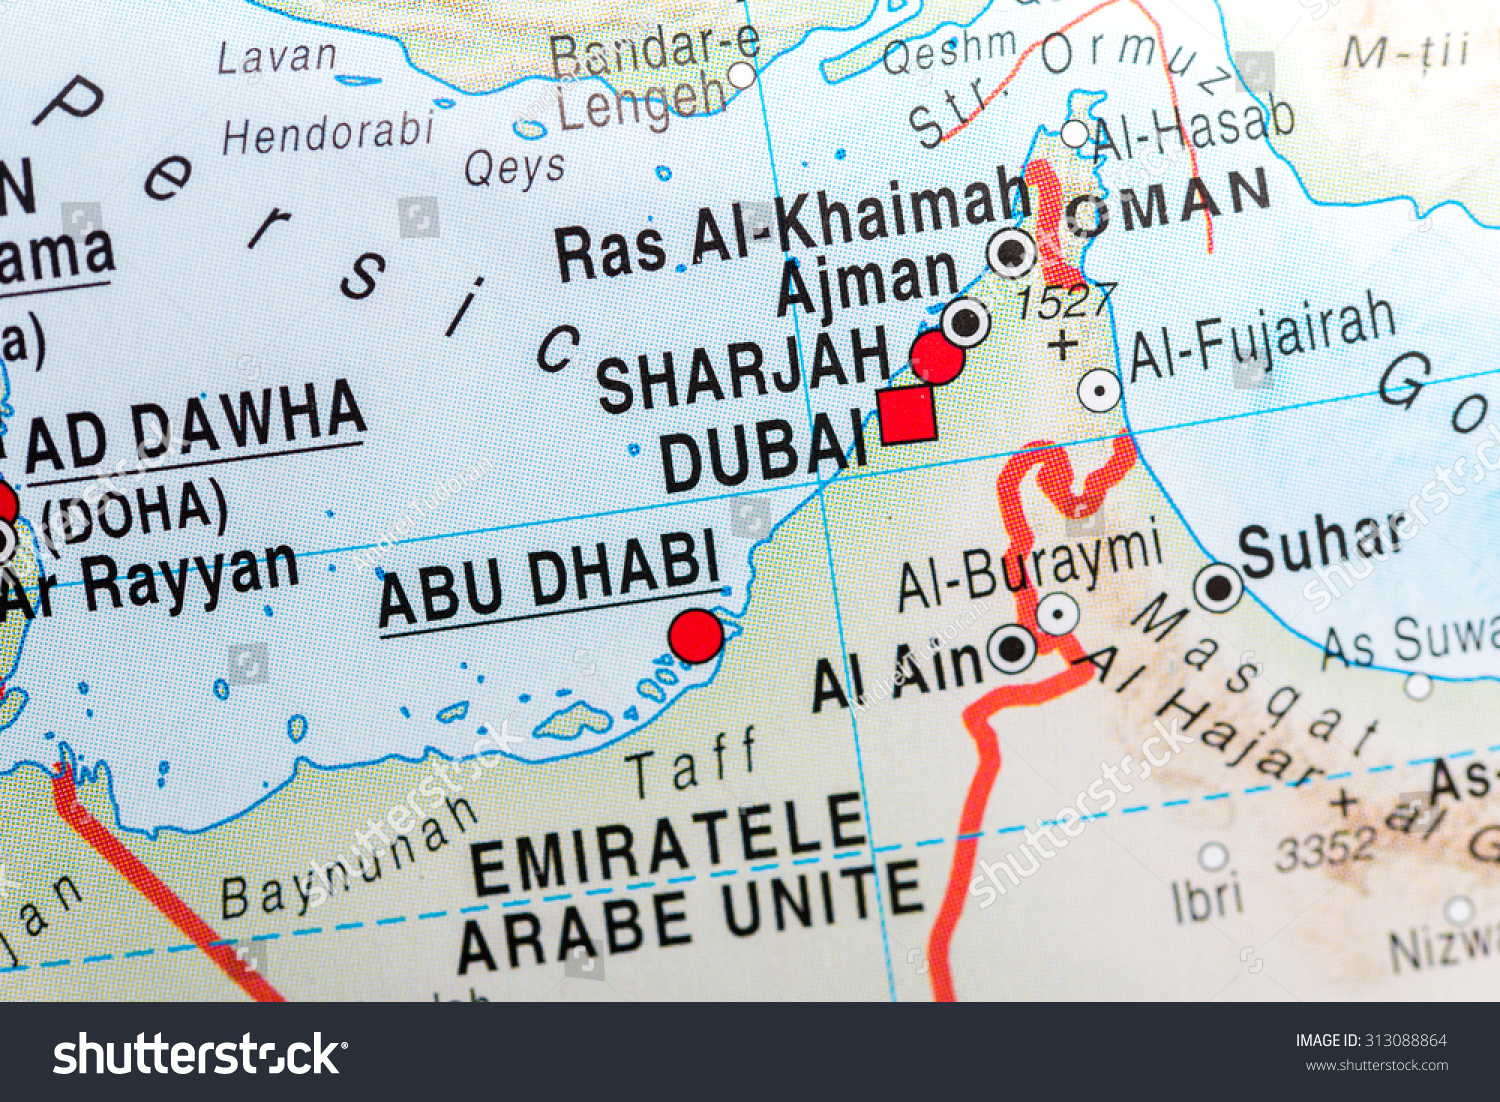 Map View Abu Dhabi Dubai Stock Photo (Edit Now) 313088864 - Shutterstock